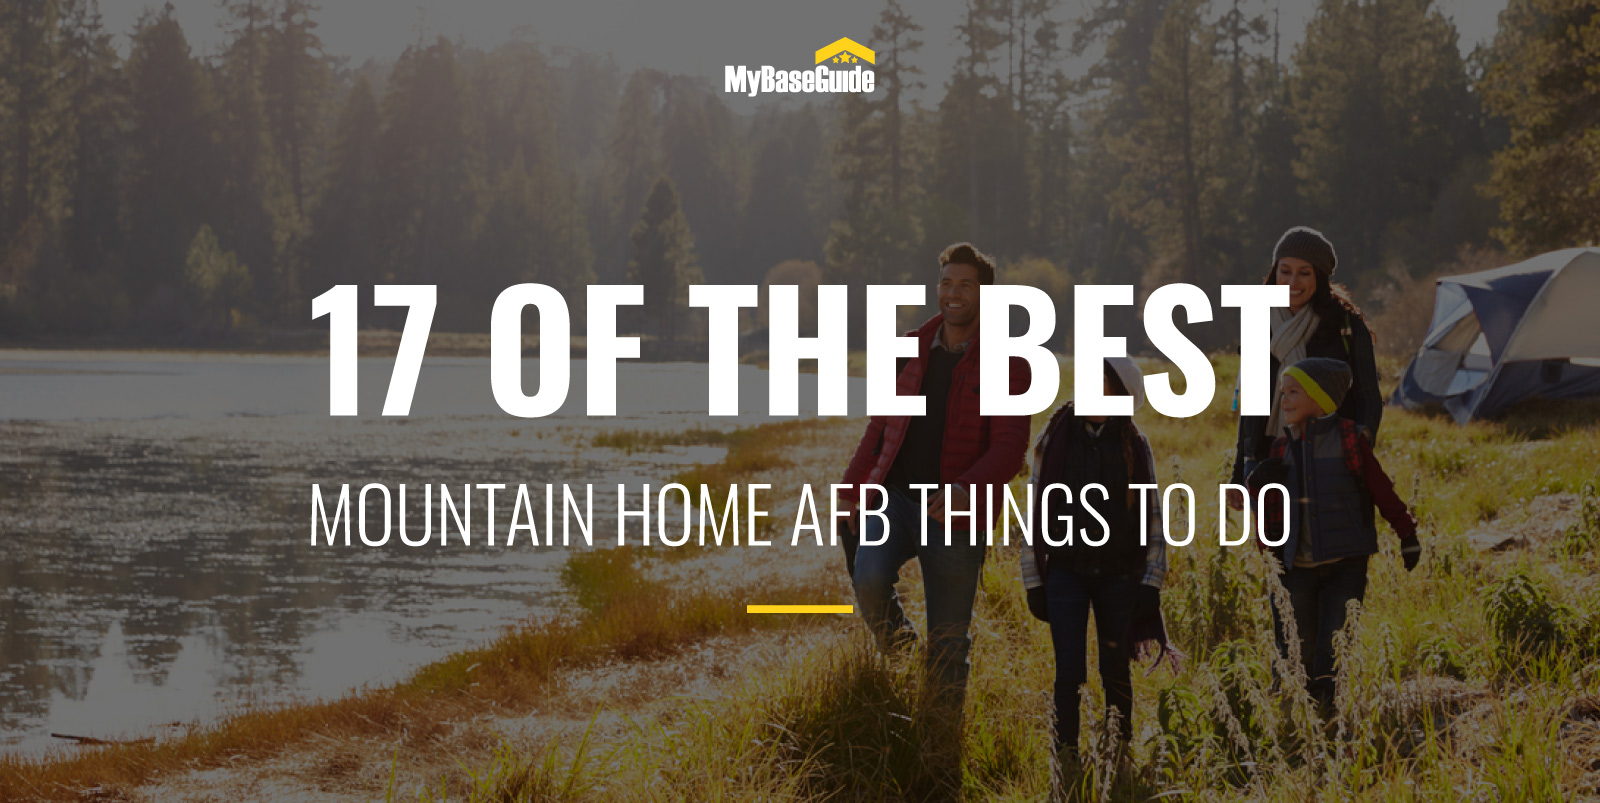 17 Of the Best Mountain Home AFB Things to Do